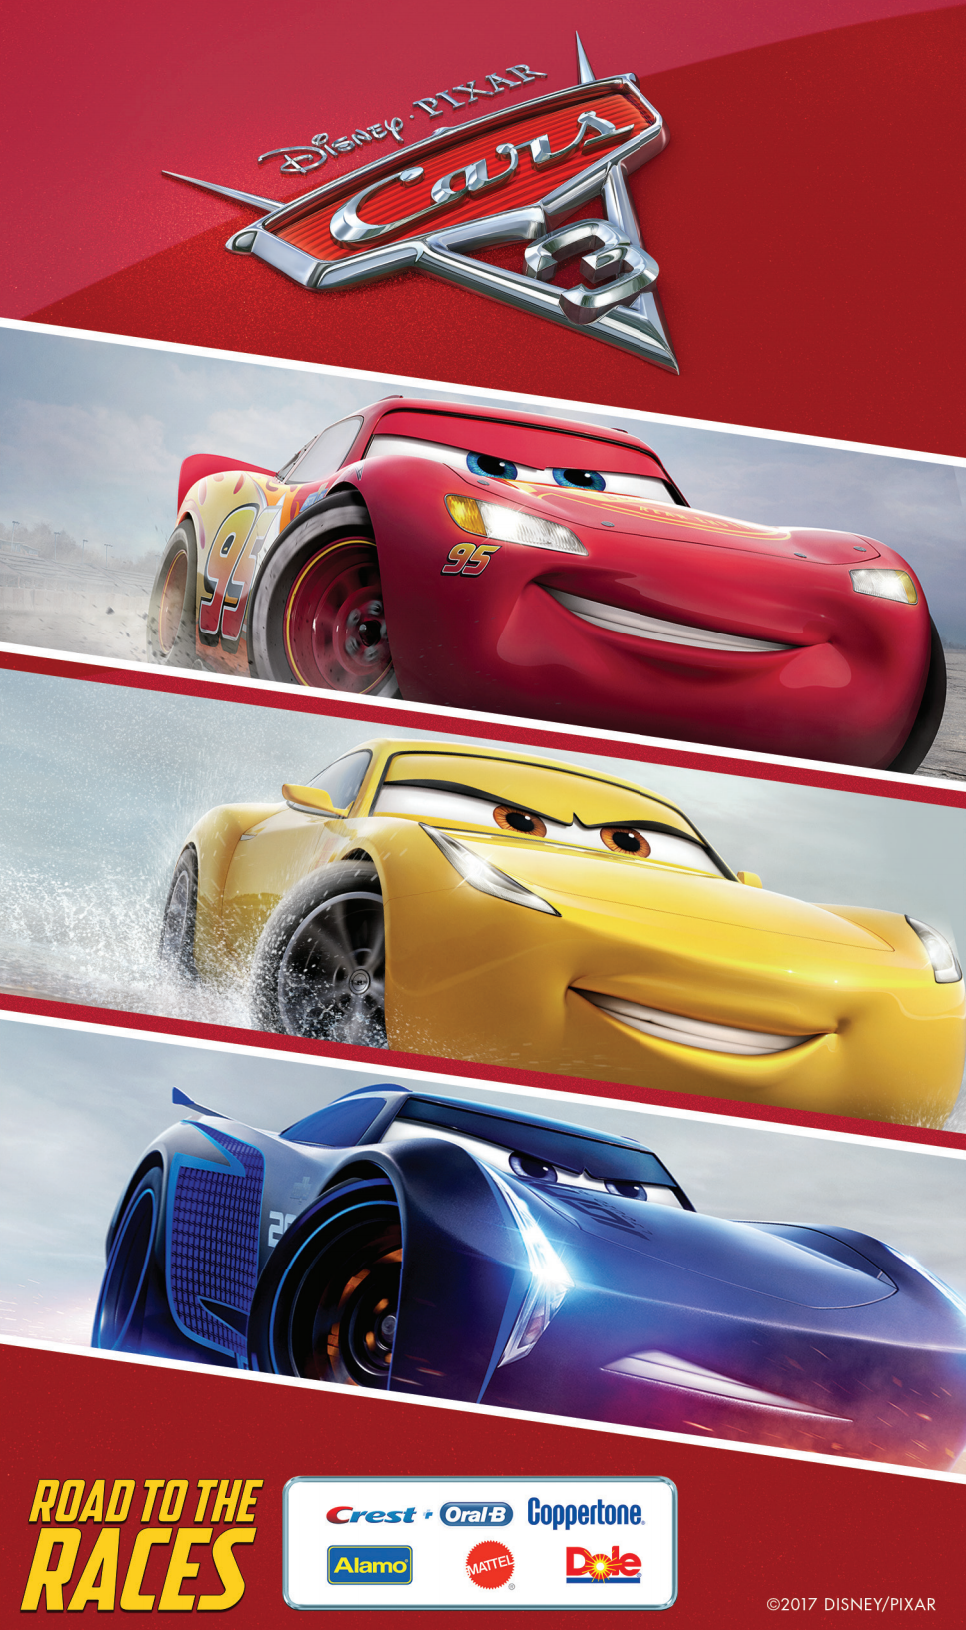 The CARS 3 Road to the Races Tour is in San Diego tomorrow June 6th at Belmont Park. Tons of freebies and photo opps with your favorite CARS 3 characters.